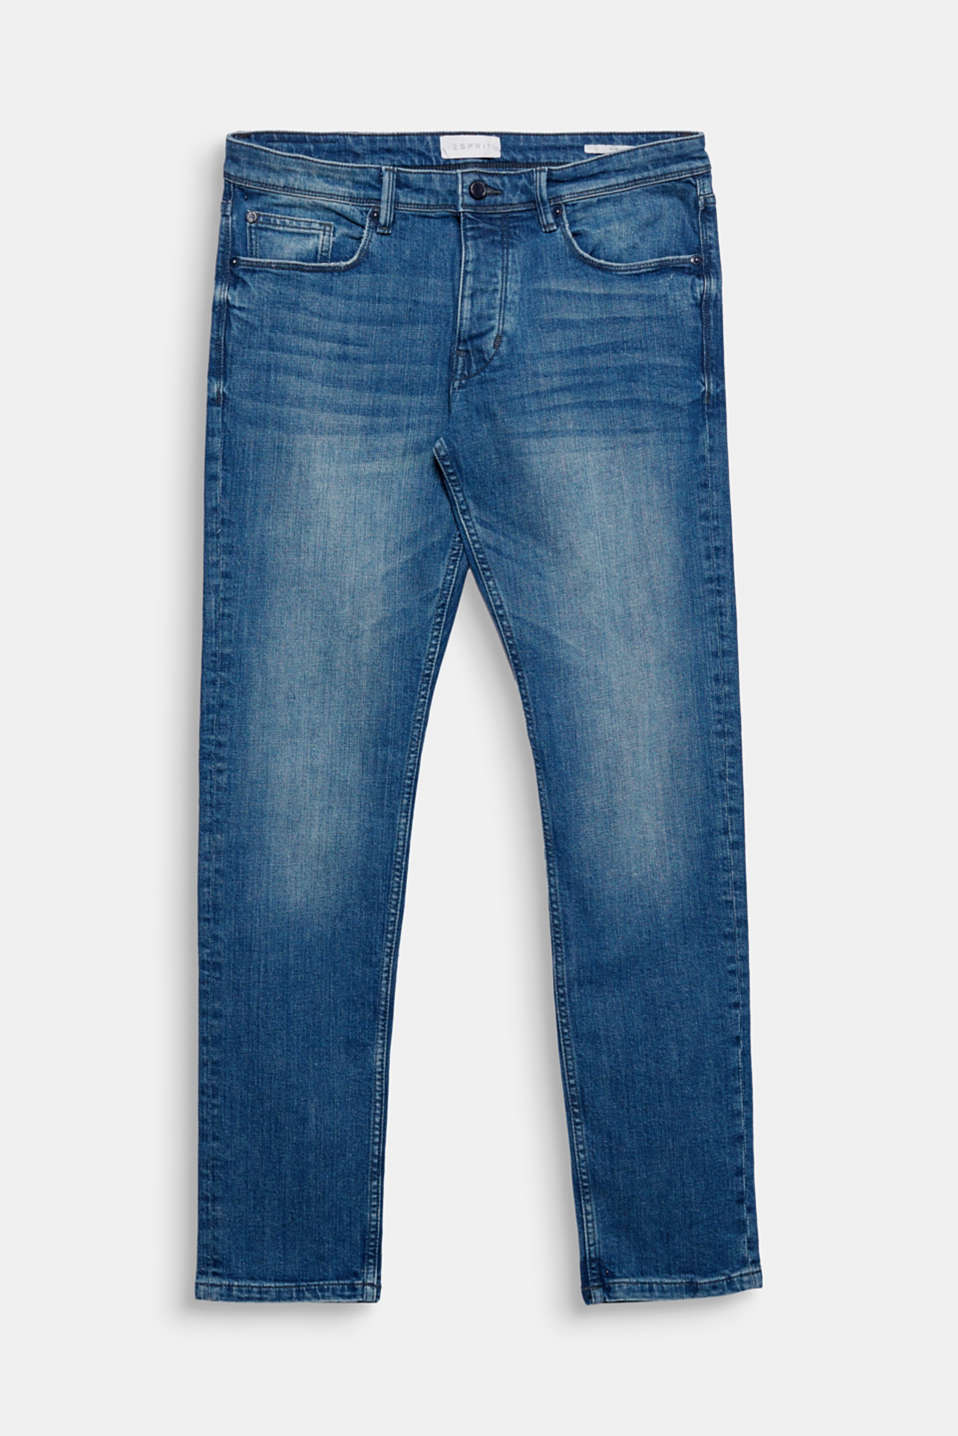 We love denim! The worn wash and lightly mottled denim give these jeans their lush look.